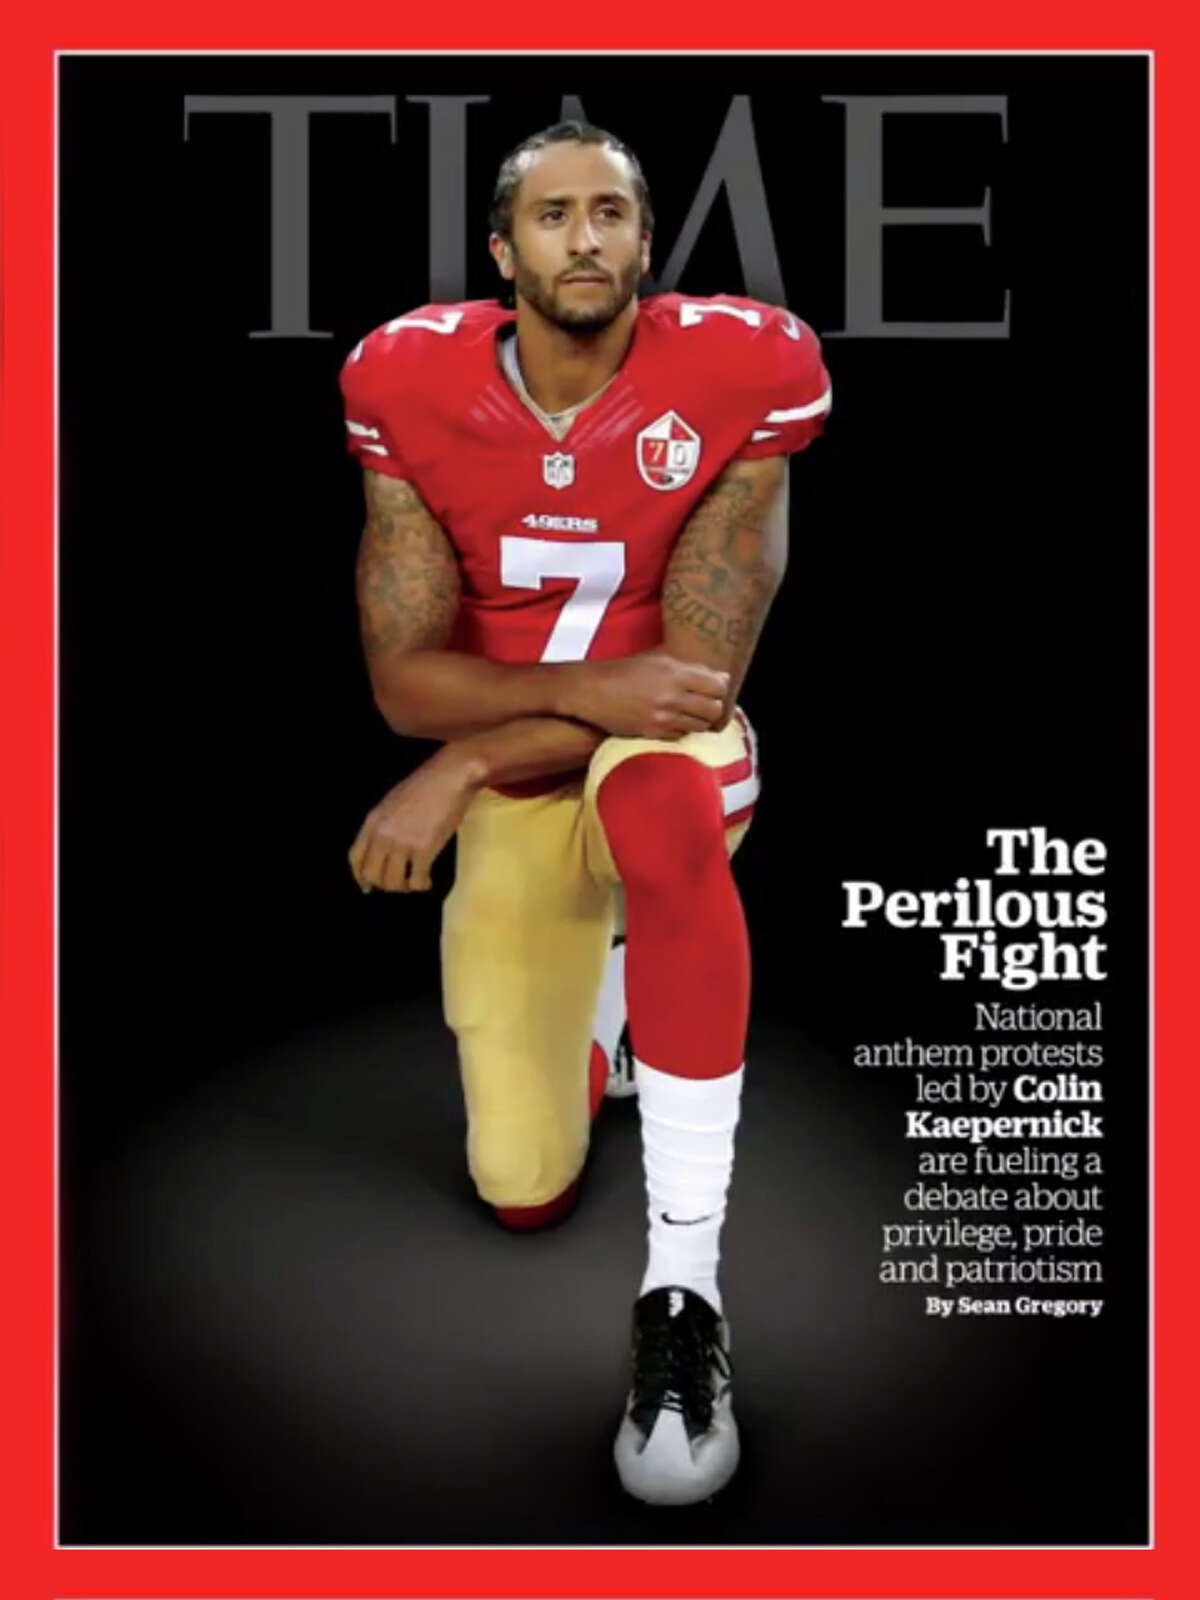 Colin Kaepernick on the cover of Time magazine.